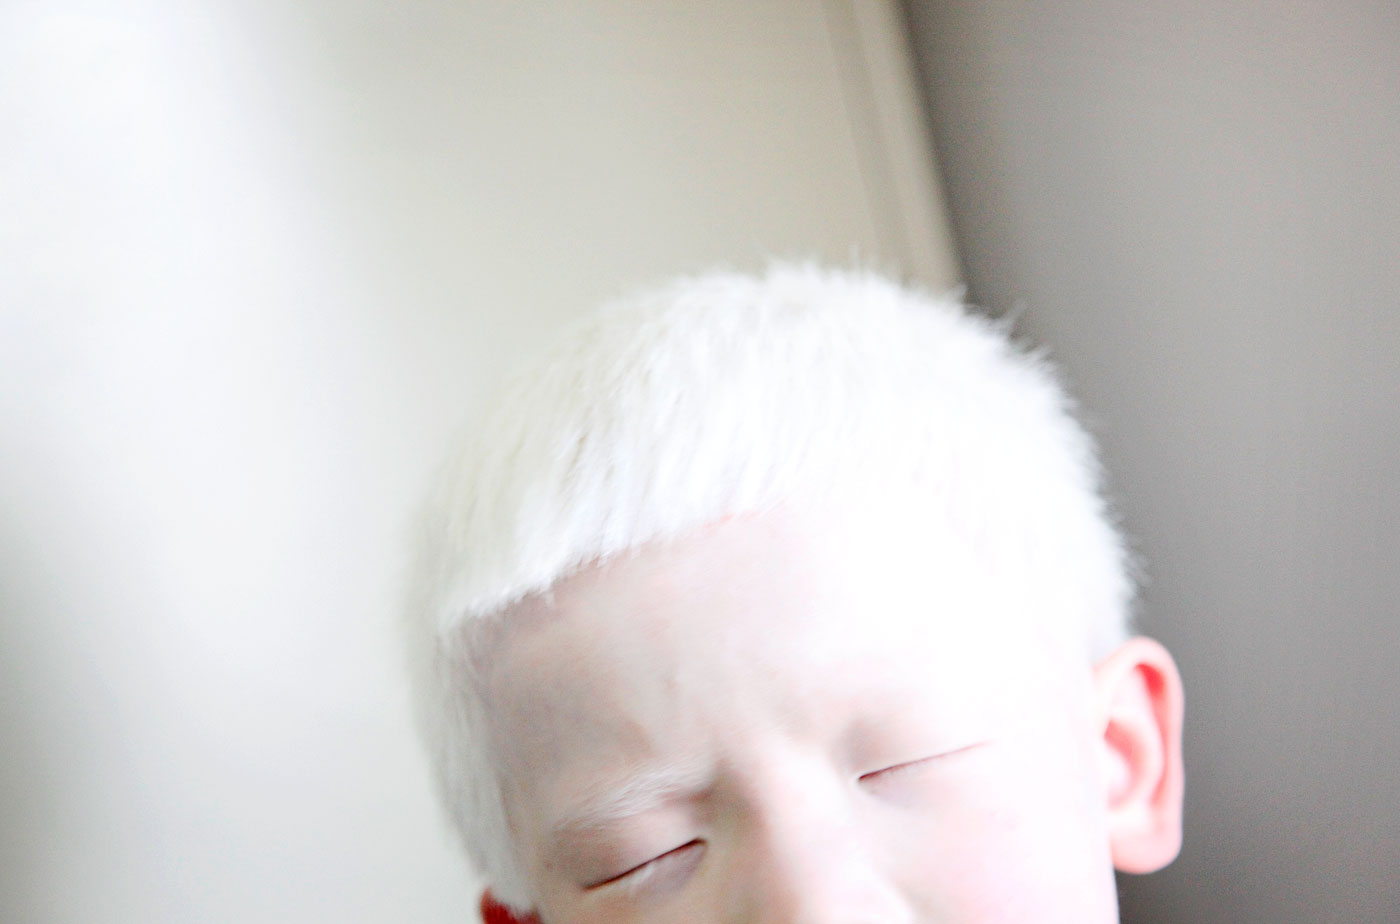 Paul Anderson, 9, squints in the light. Albinism is a rare genetic condition in which pigment is lacking in the skin, hair and eyes.